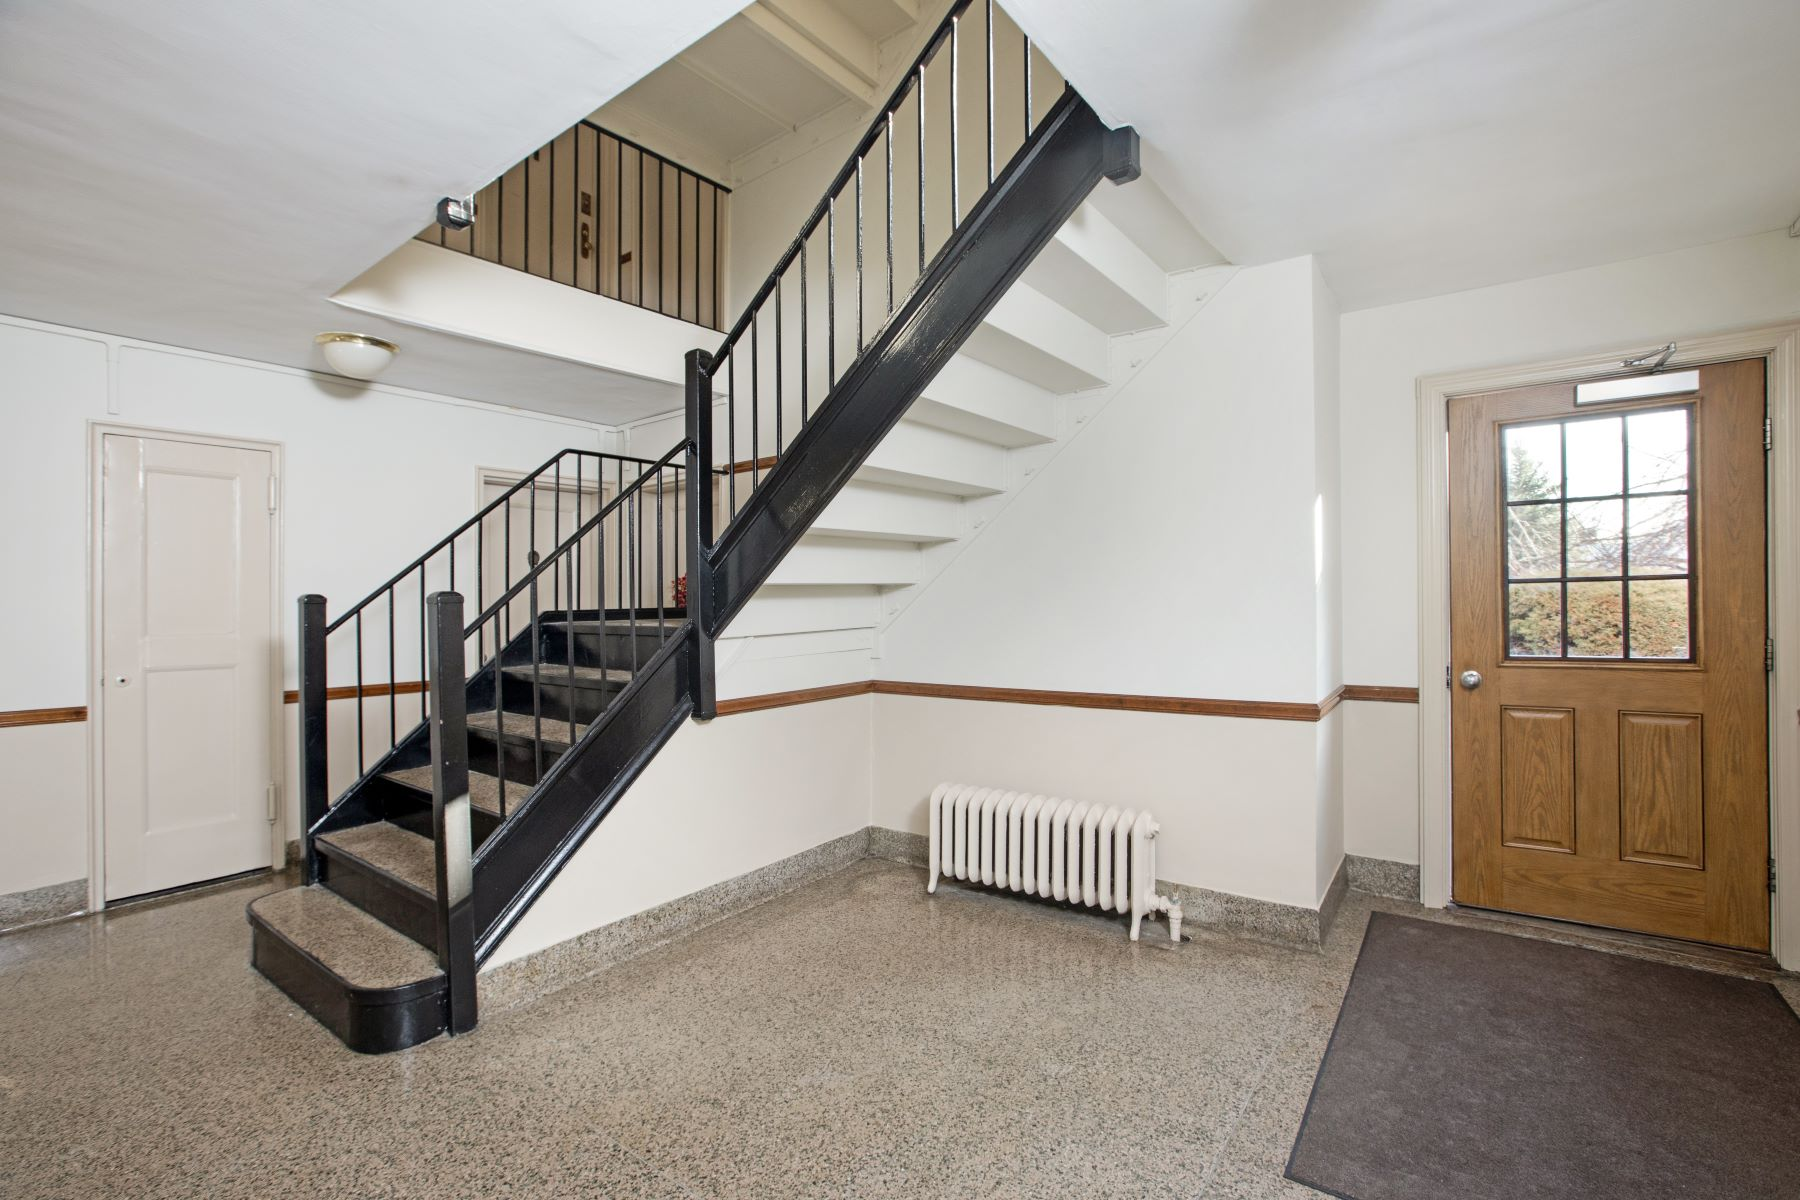 Additional photo for property listing at 330 South Broadway 330 South Broadway C2 Tarrytown, New York 10591 United States